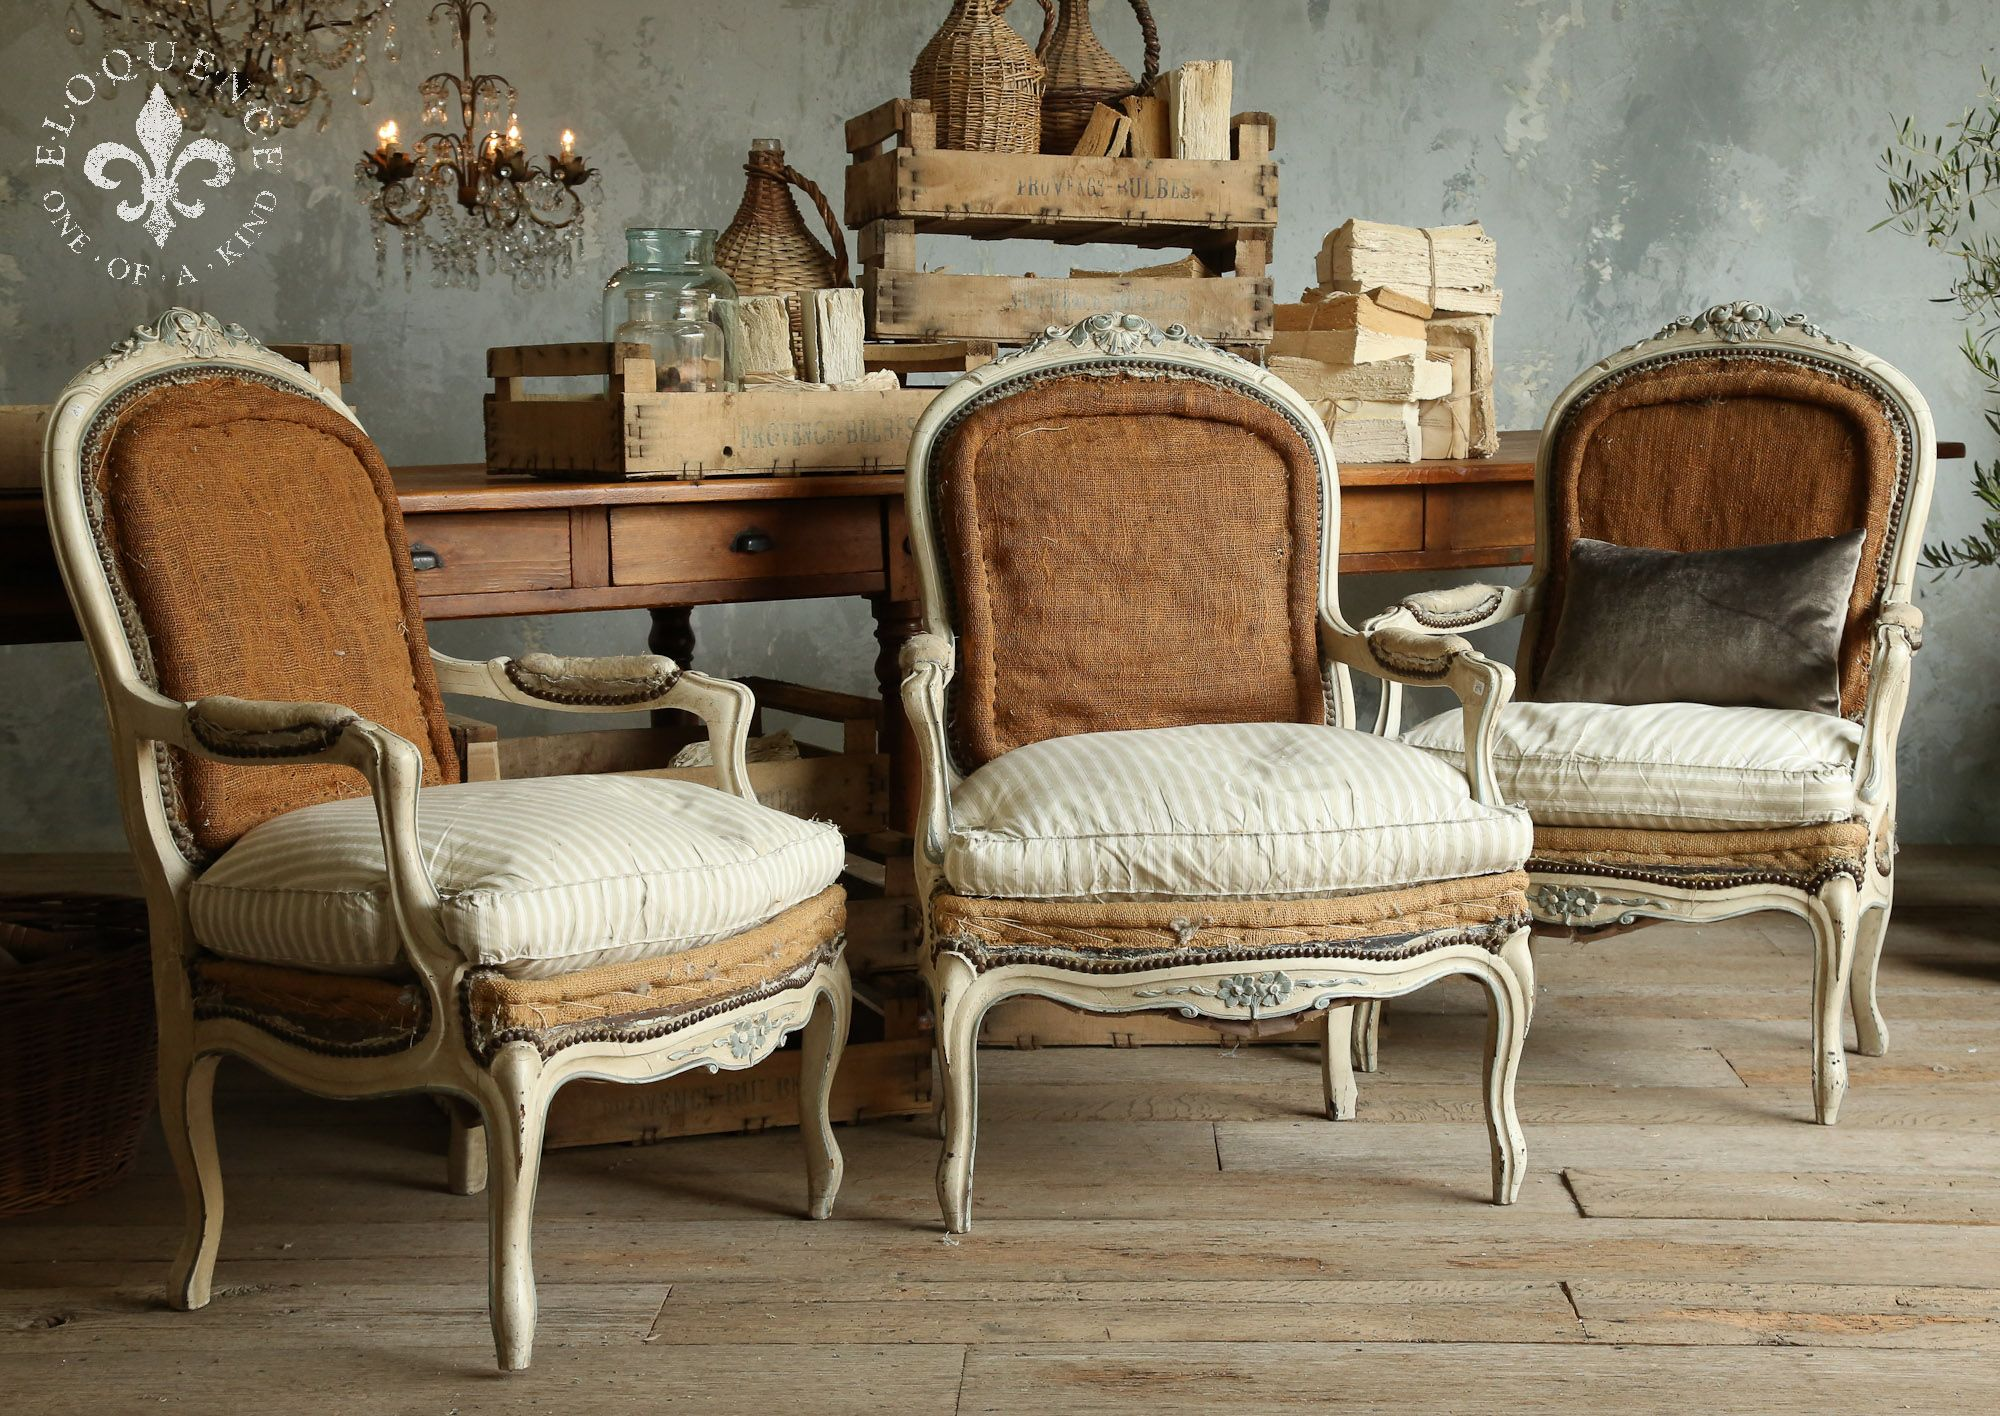 burlap chair covers for sale cover hire bournemouth pair of large french louis xv style armchairs in original